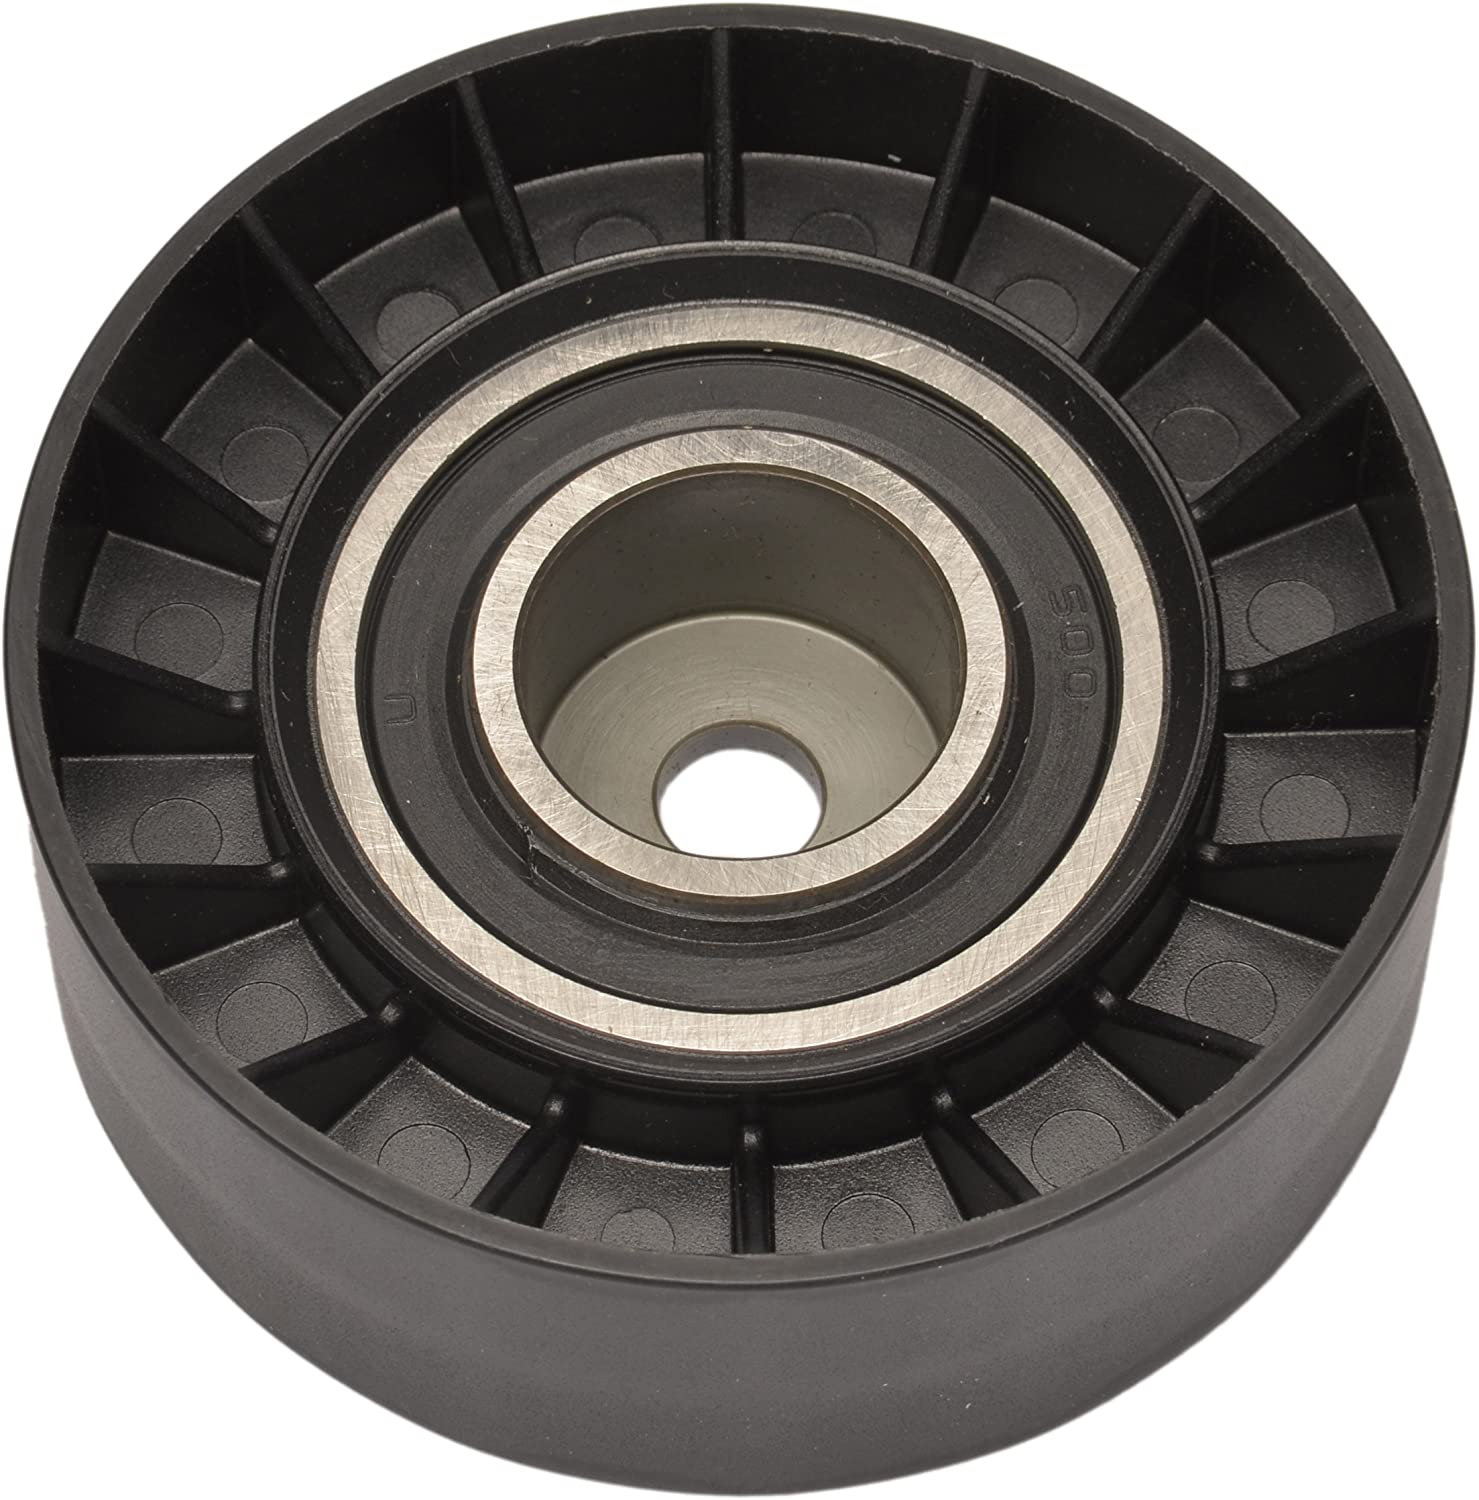 Continental 49046 Accu-Drive Pulley